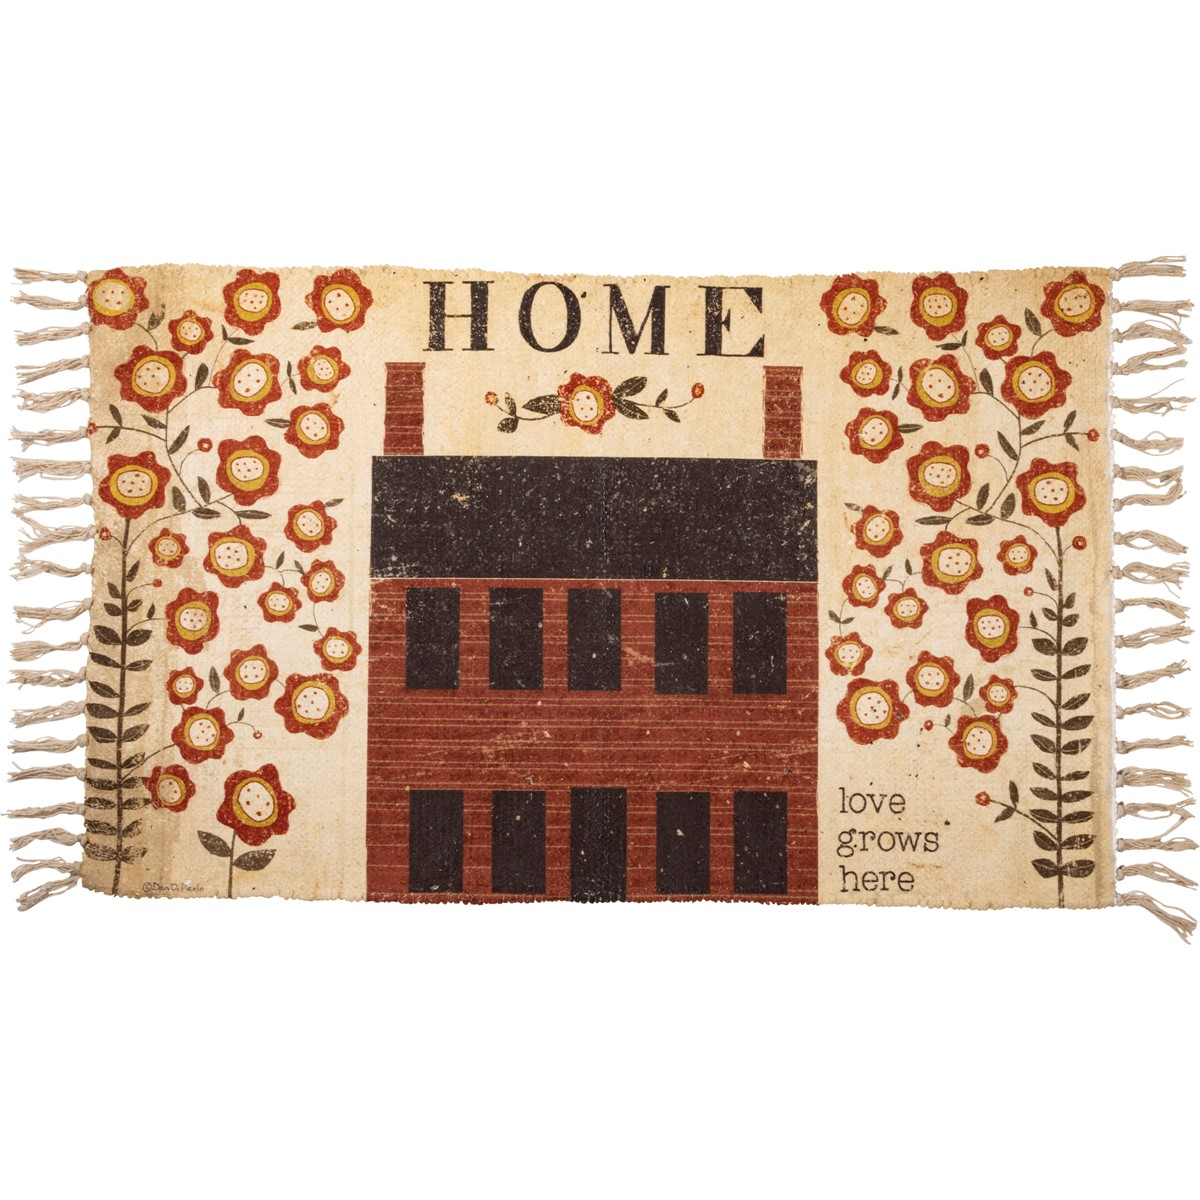 "Rug - Home Love Grows Here - 34"" x 20"" - Polyester, Cotton"